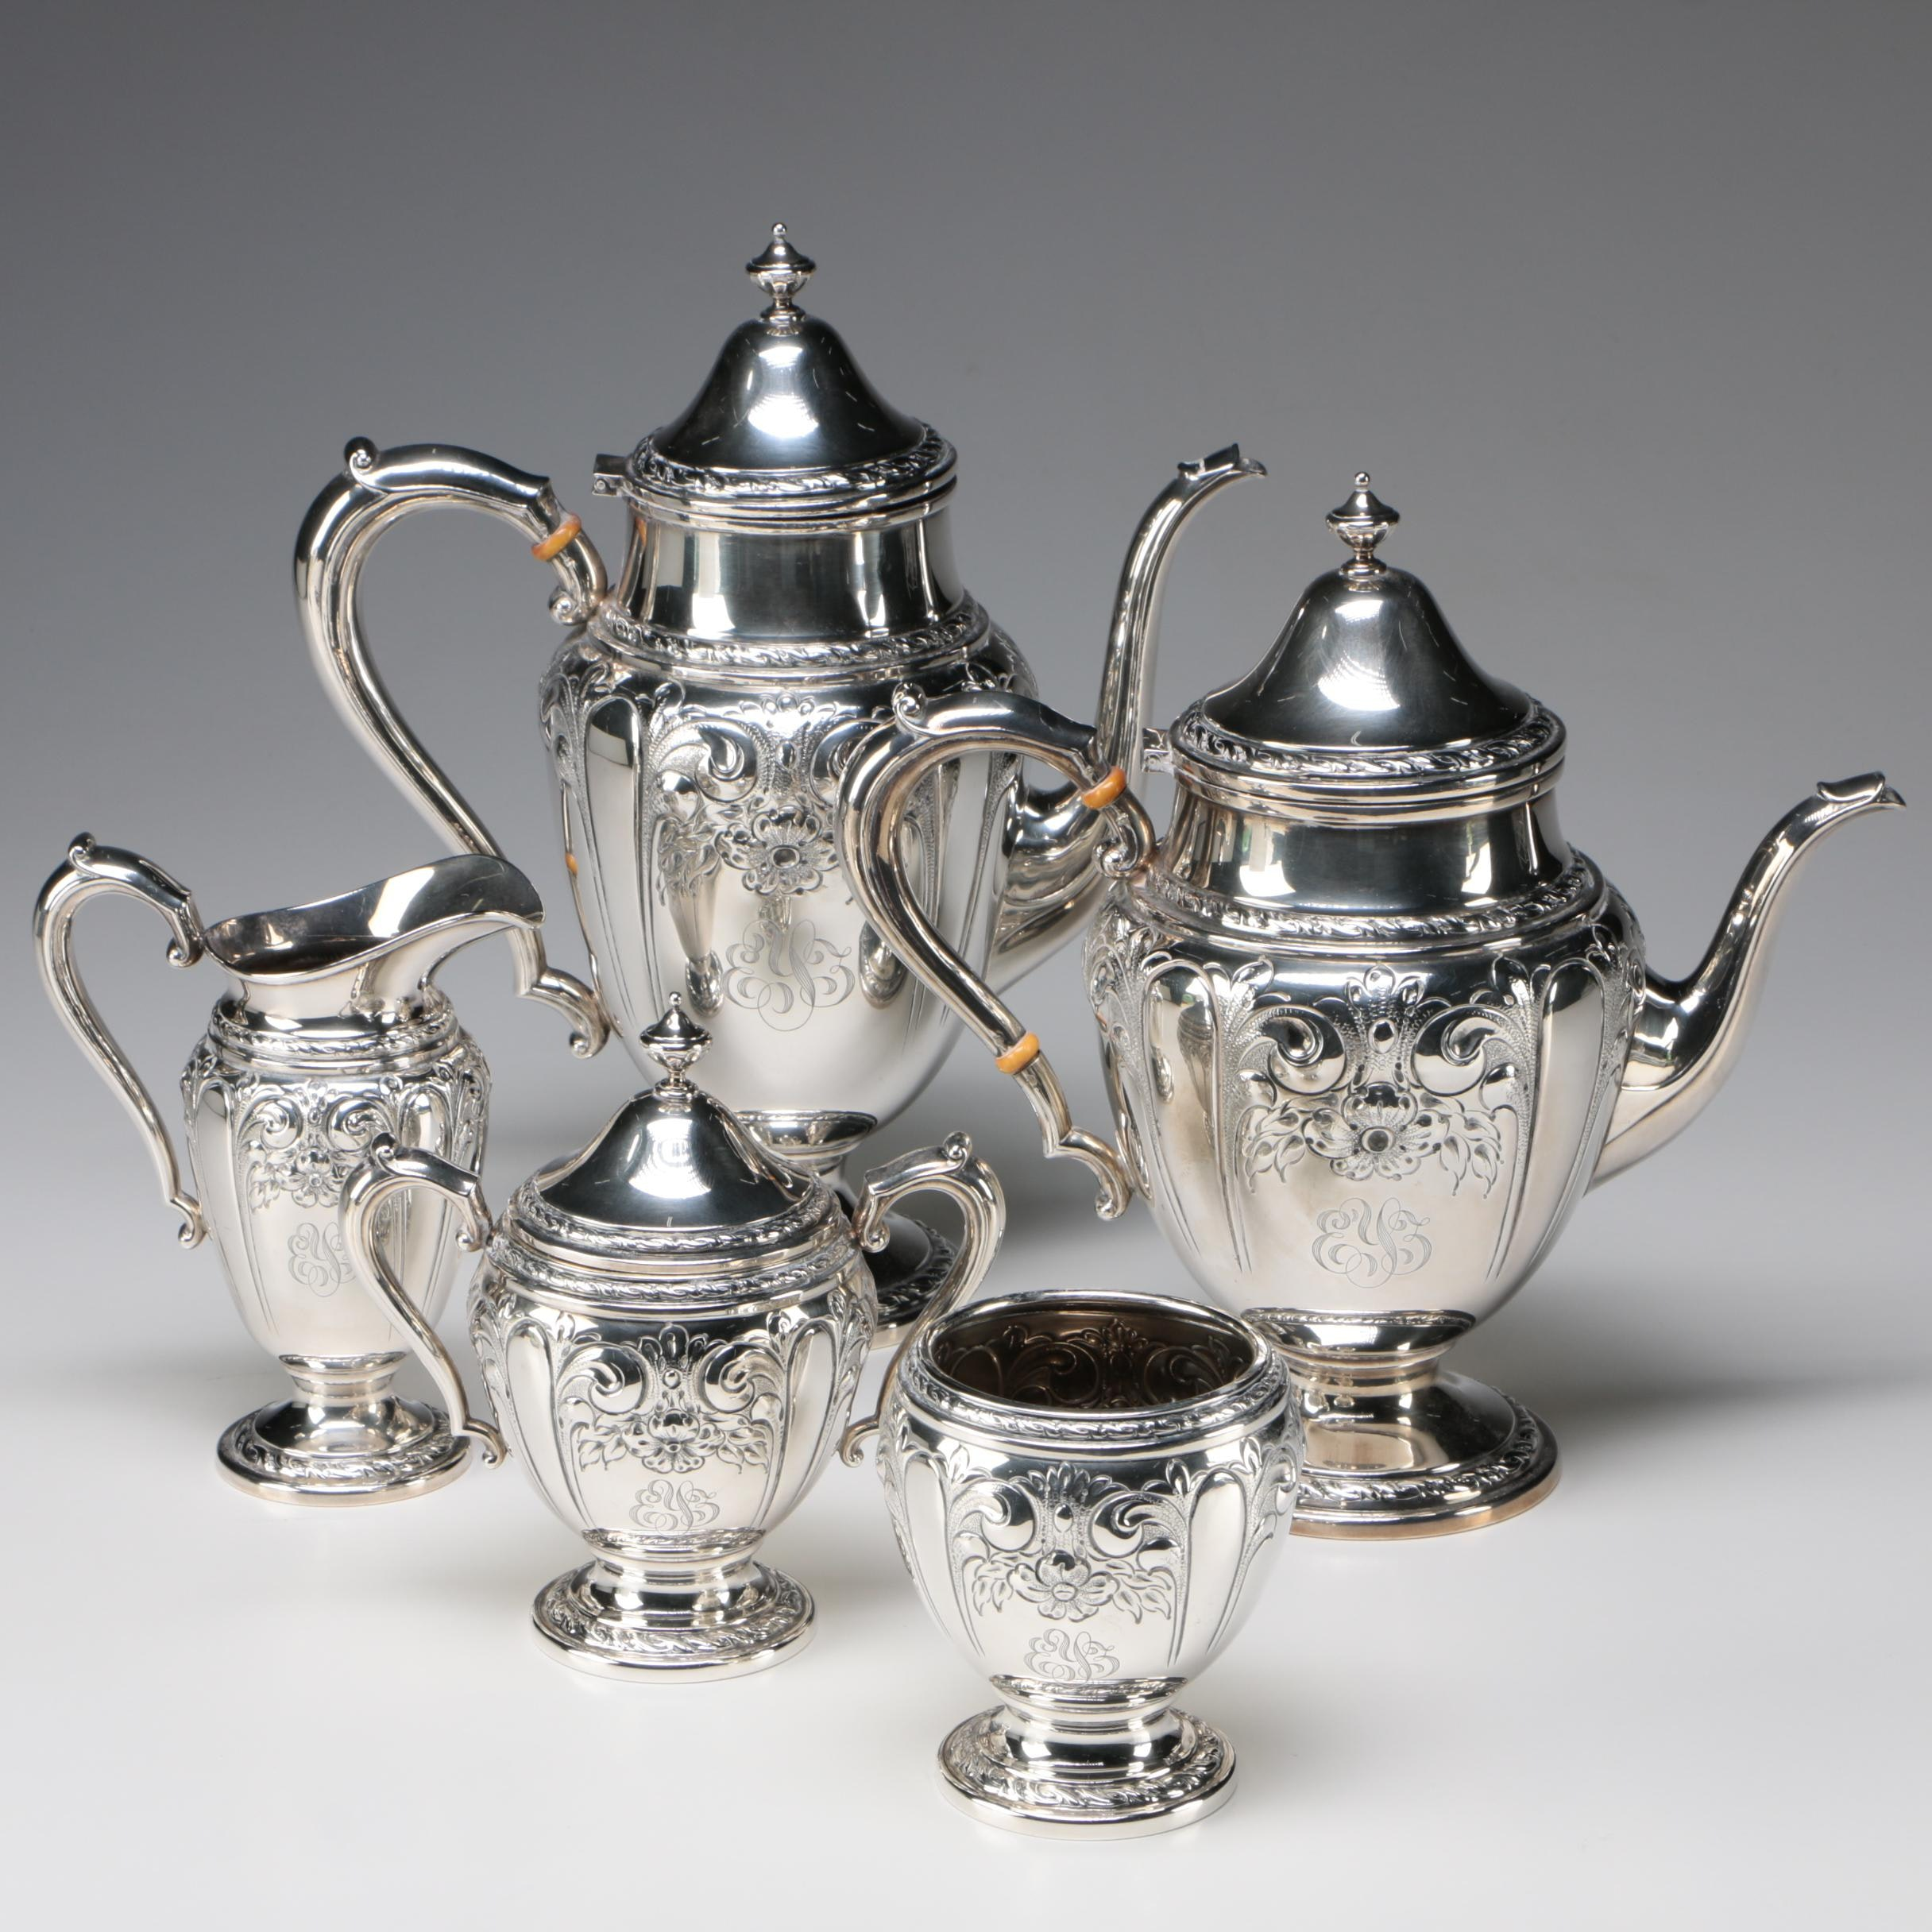 Amston Sterling Silver Tea and Coffee Service